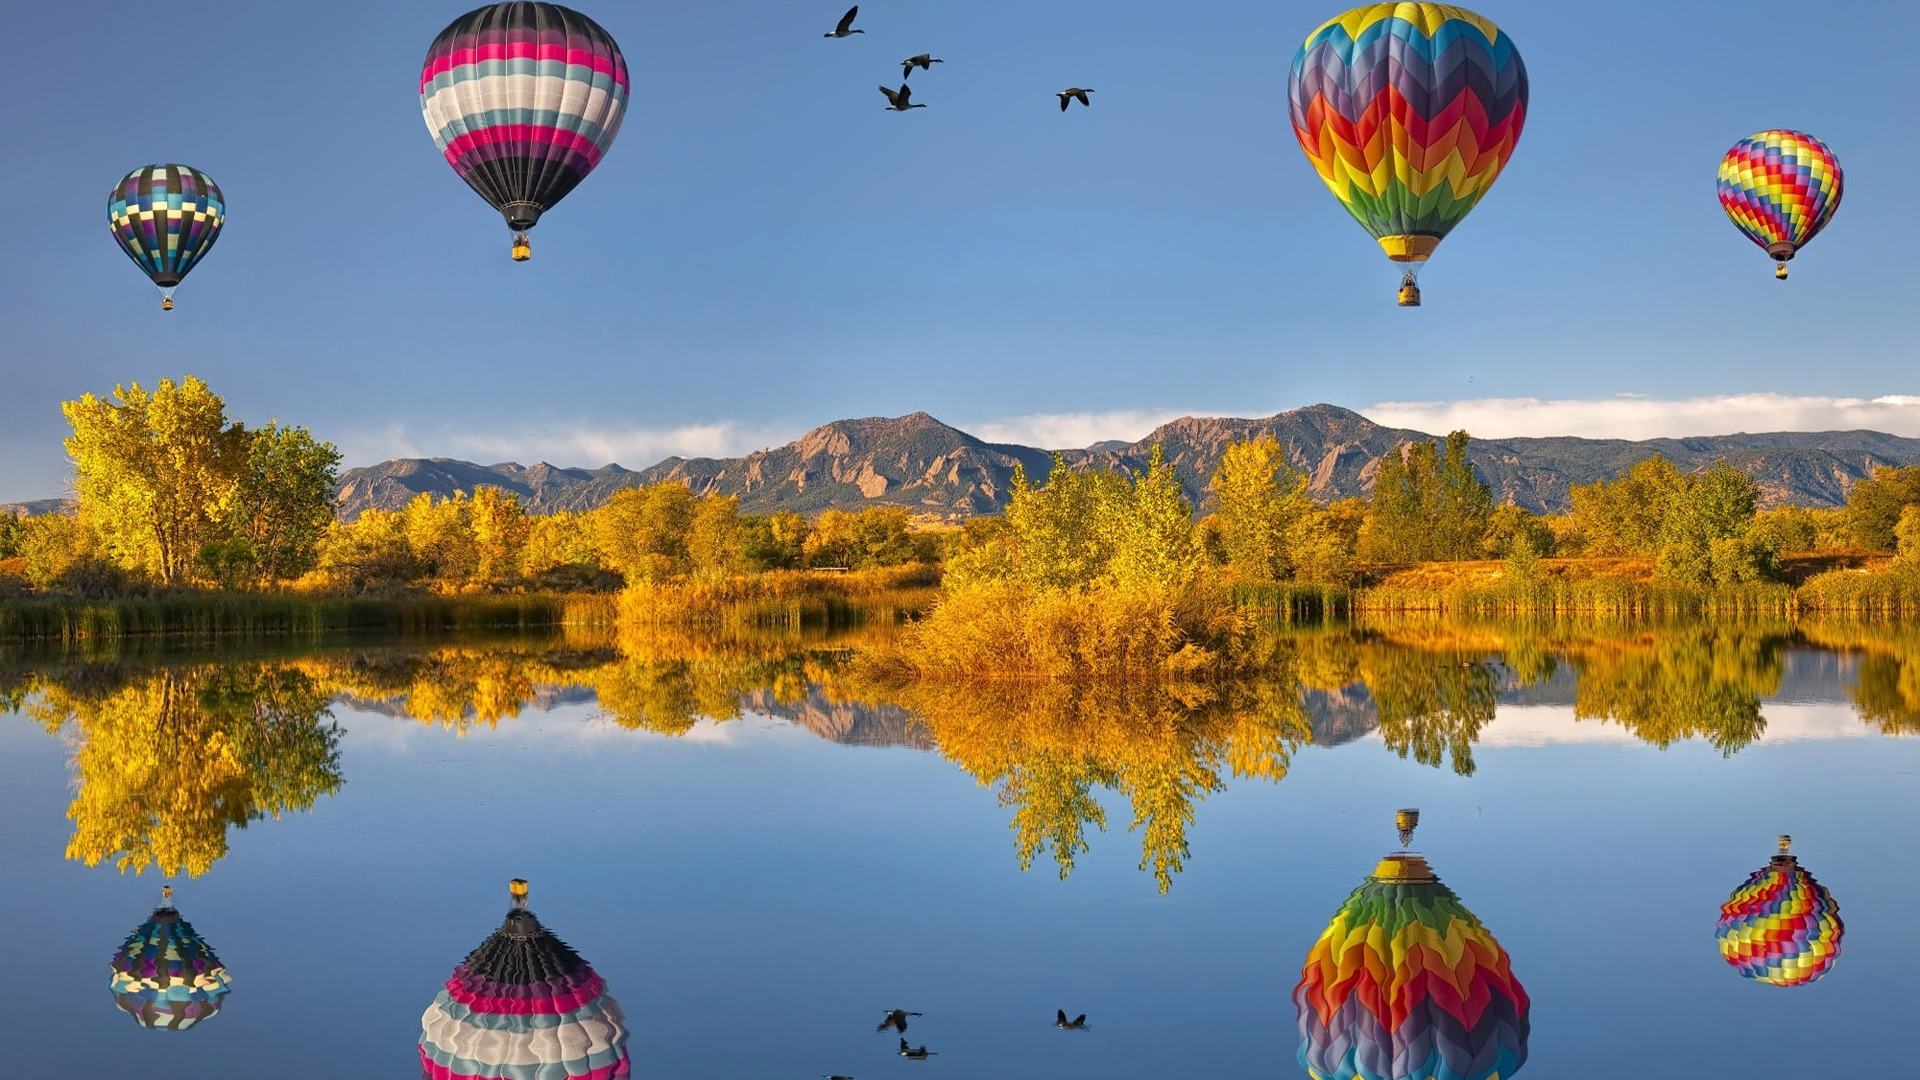 hot-air-balloons-balloon-hot-lake-nature-night-reflection